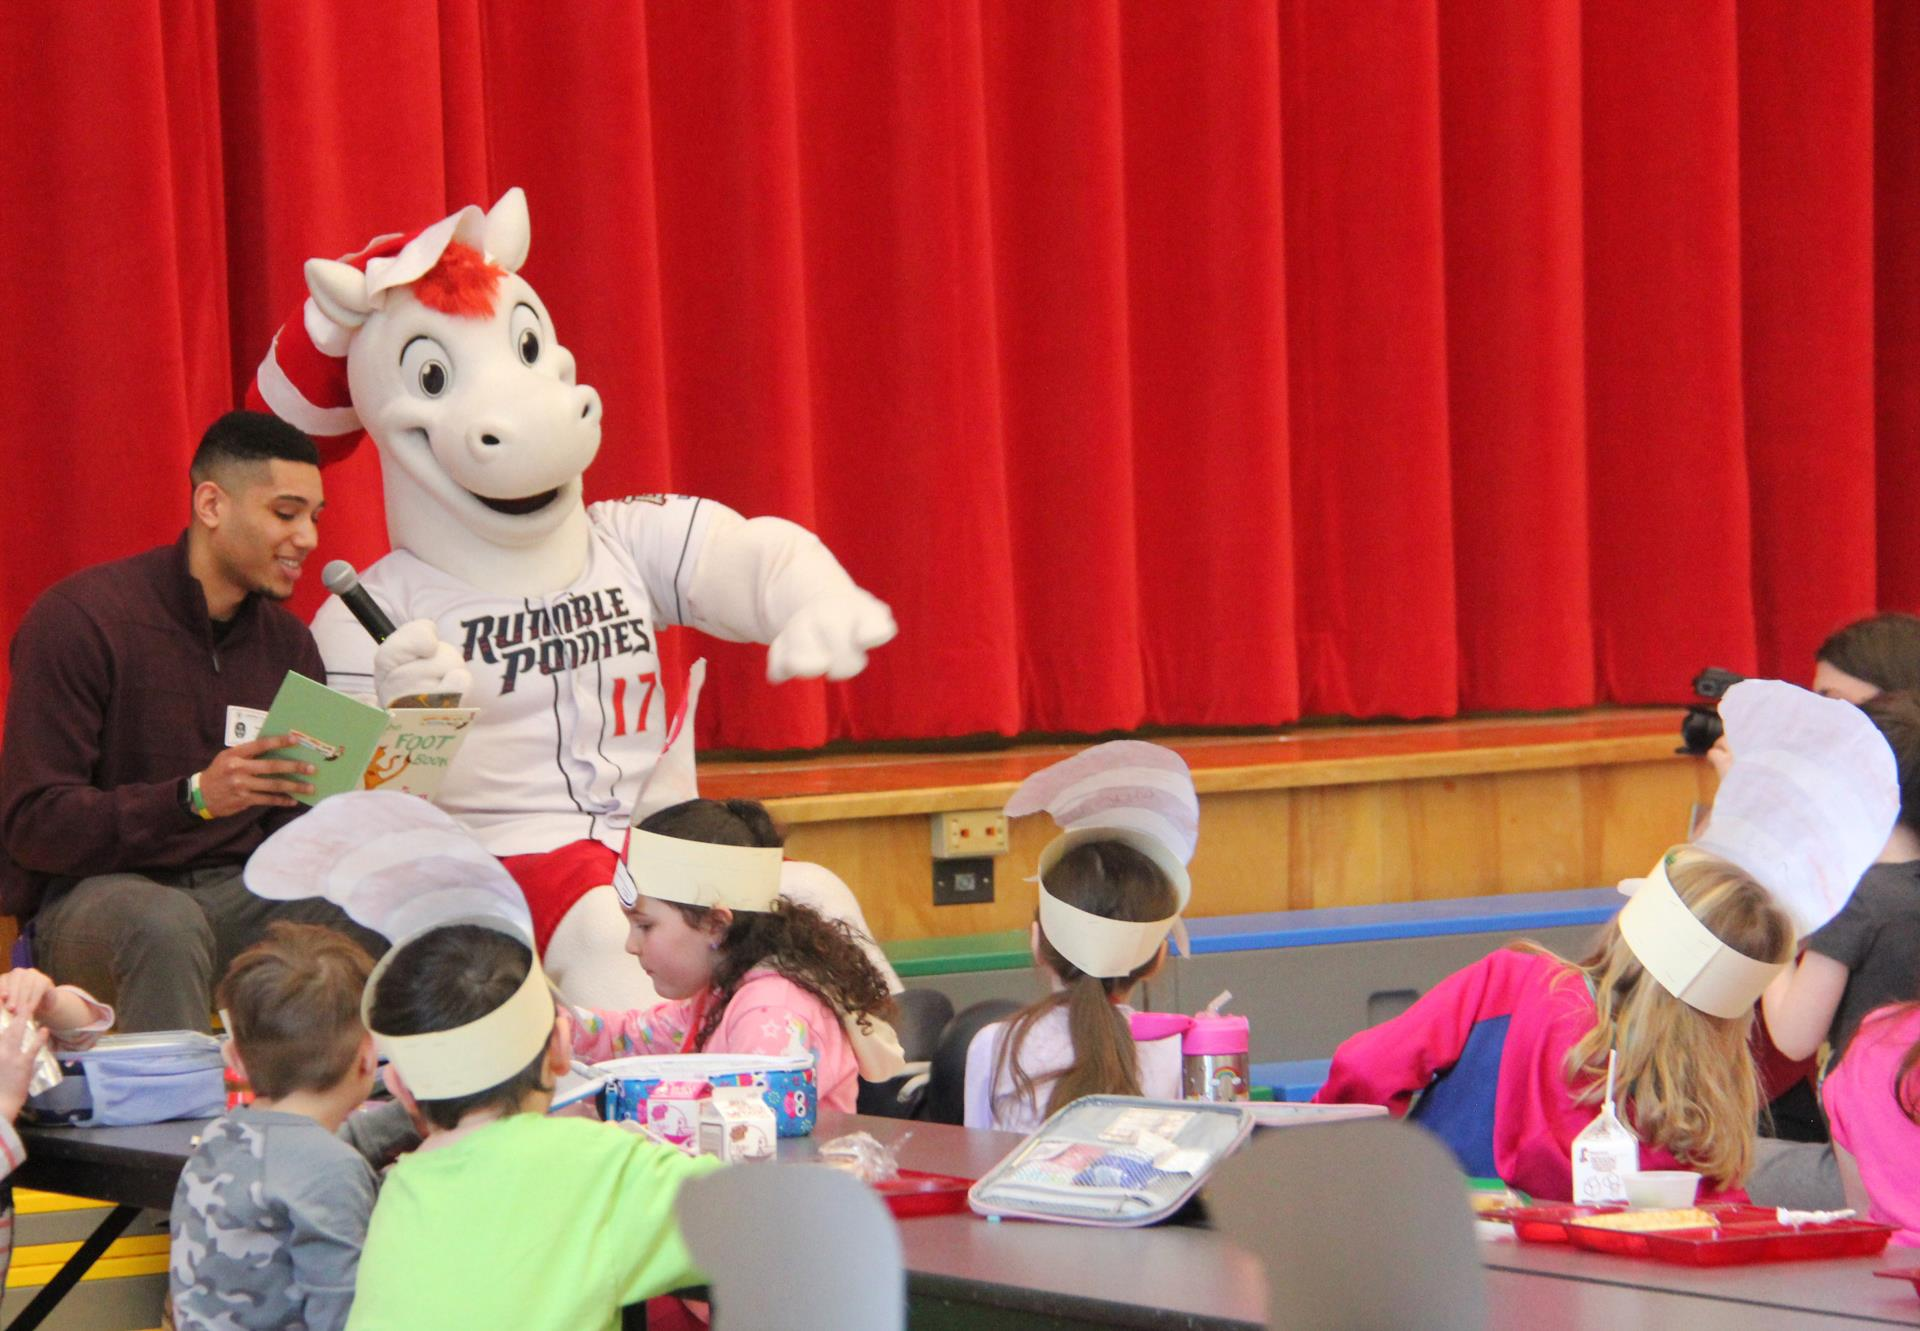 rowdy and rumble ponies representative reading to students